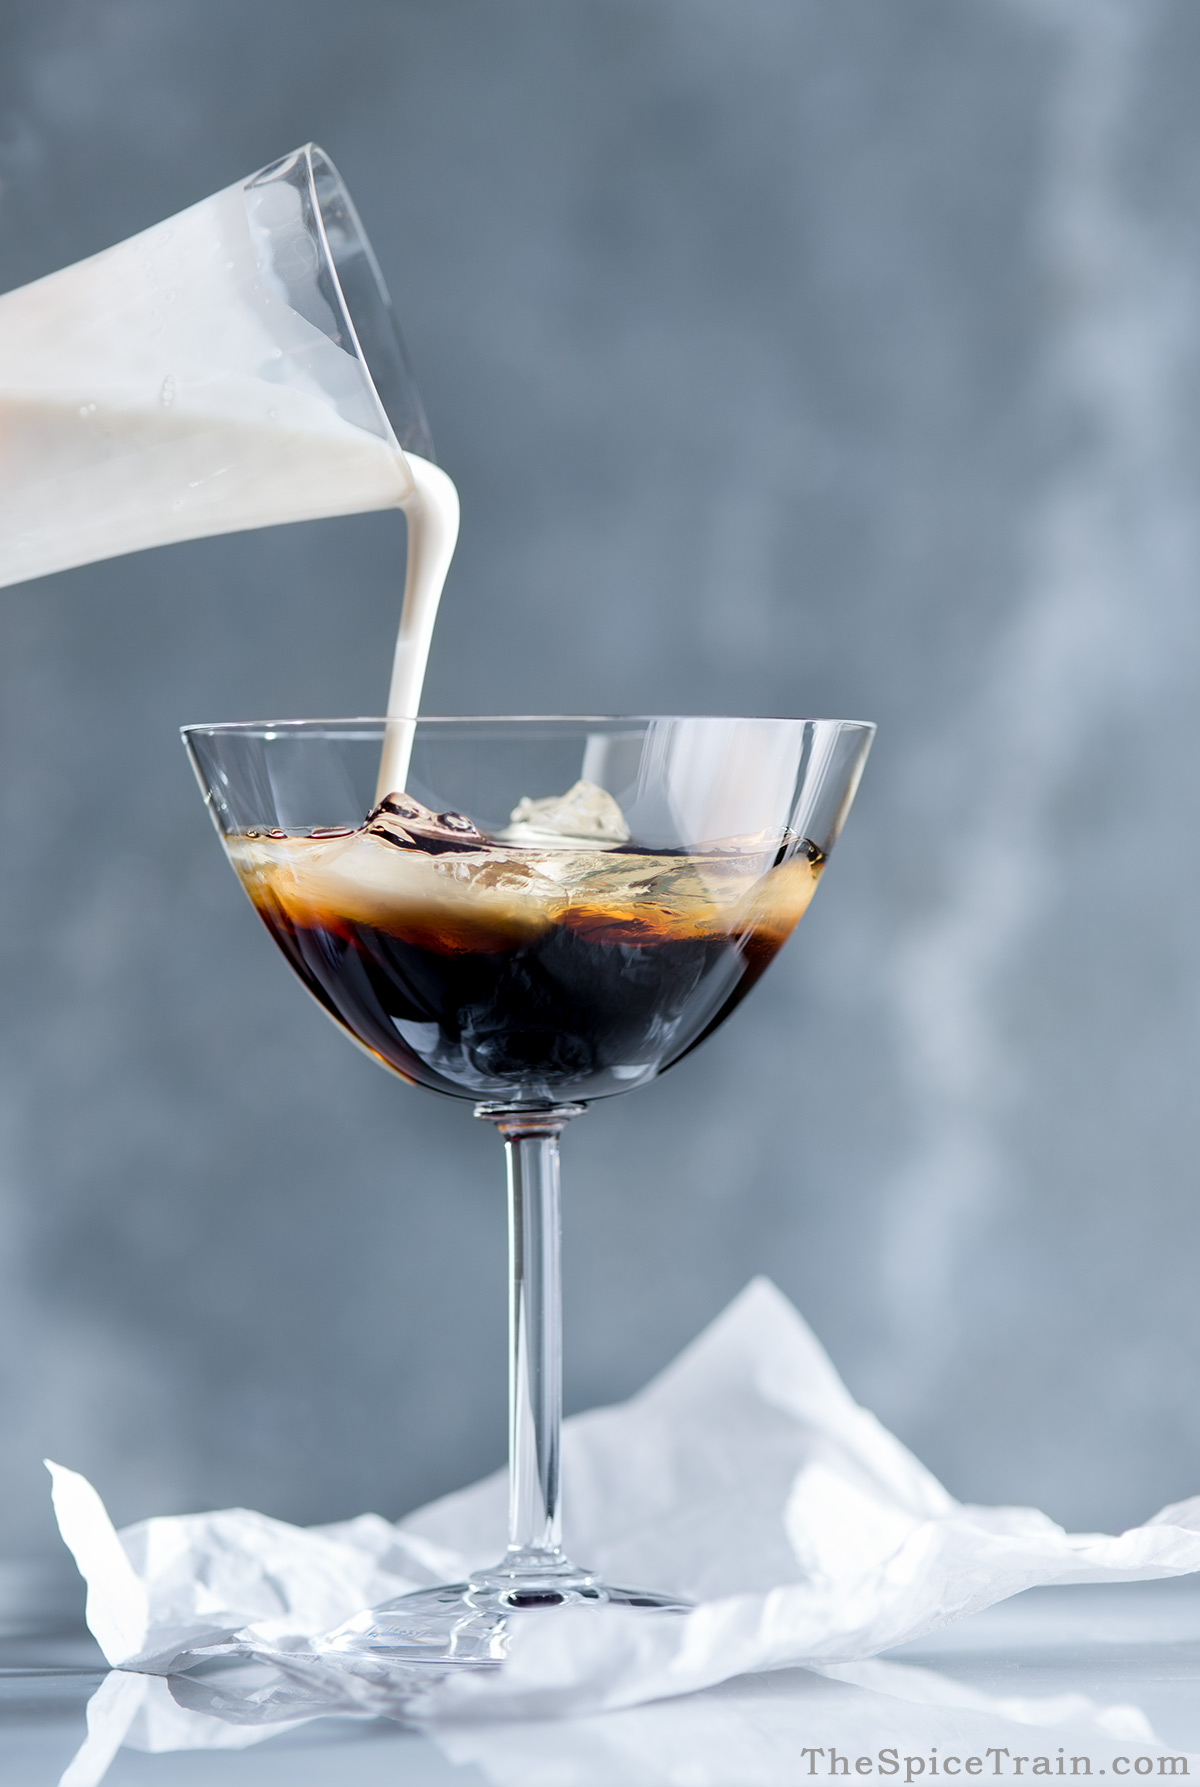 Cream being poured into a white Russian cocktail.